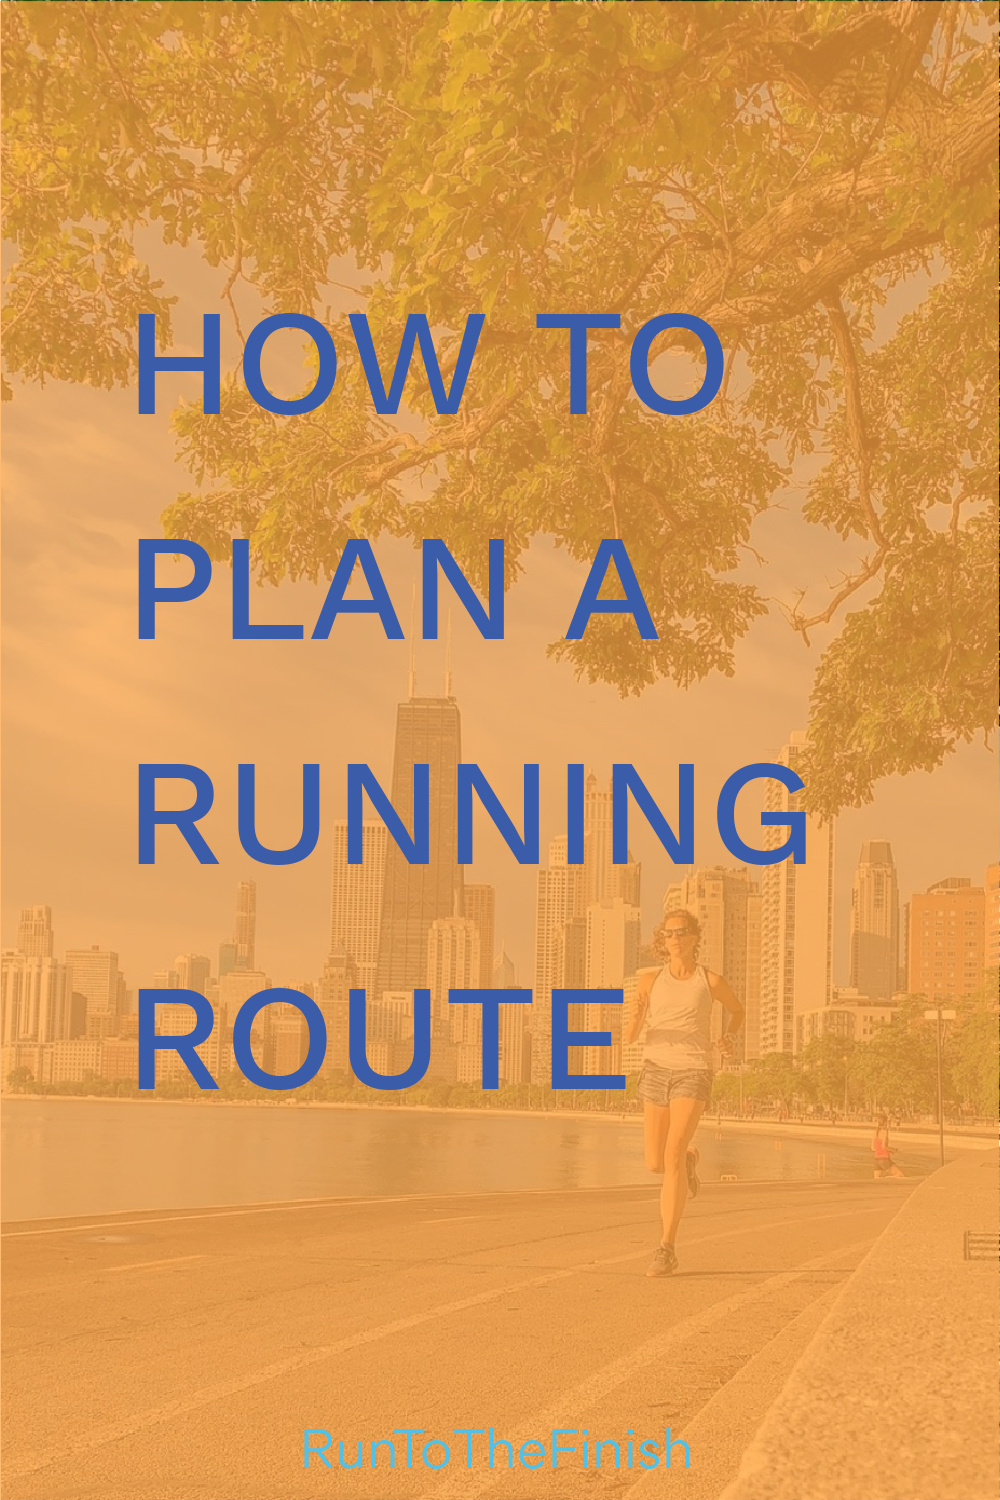 How to Plan a Running Route